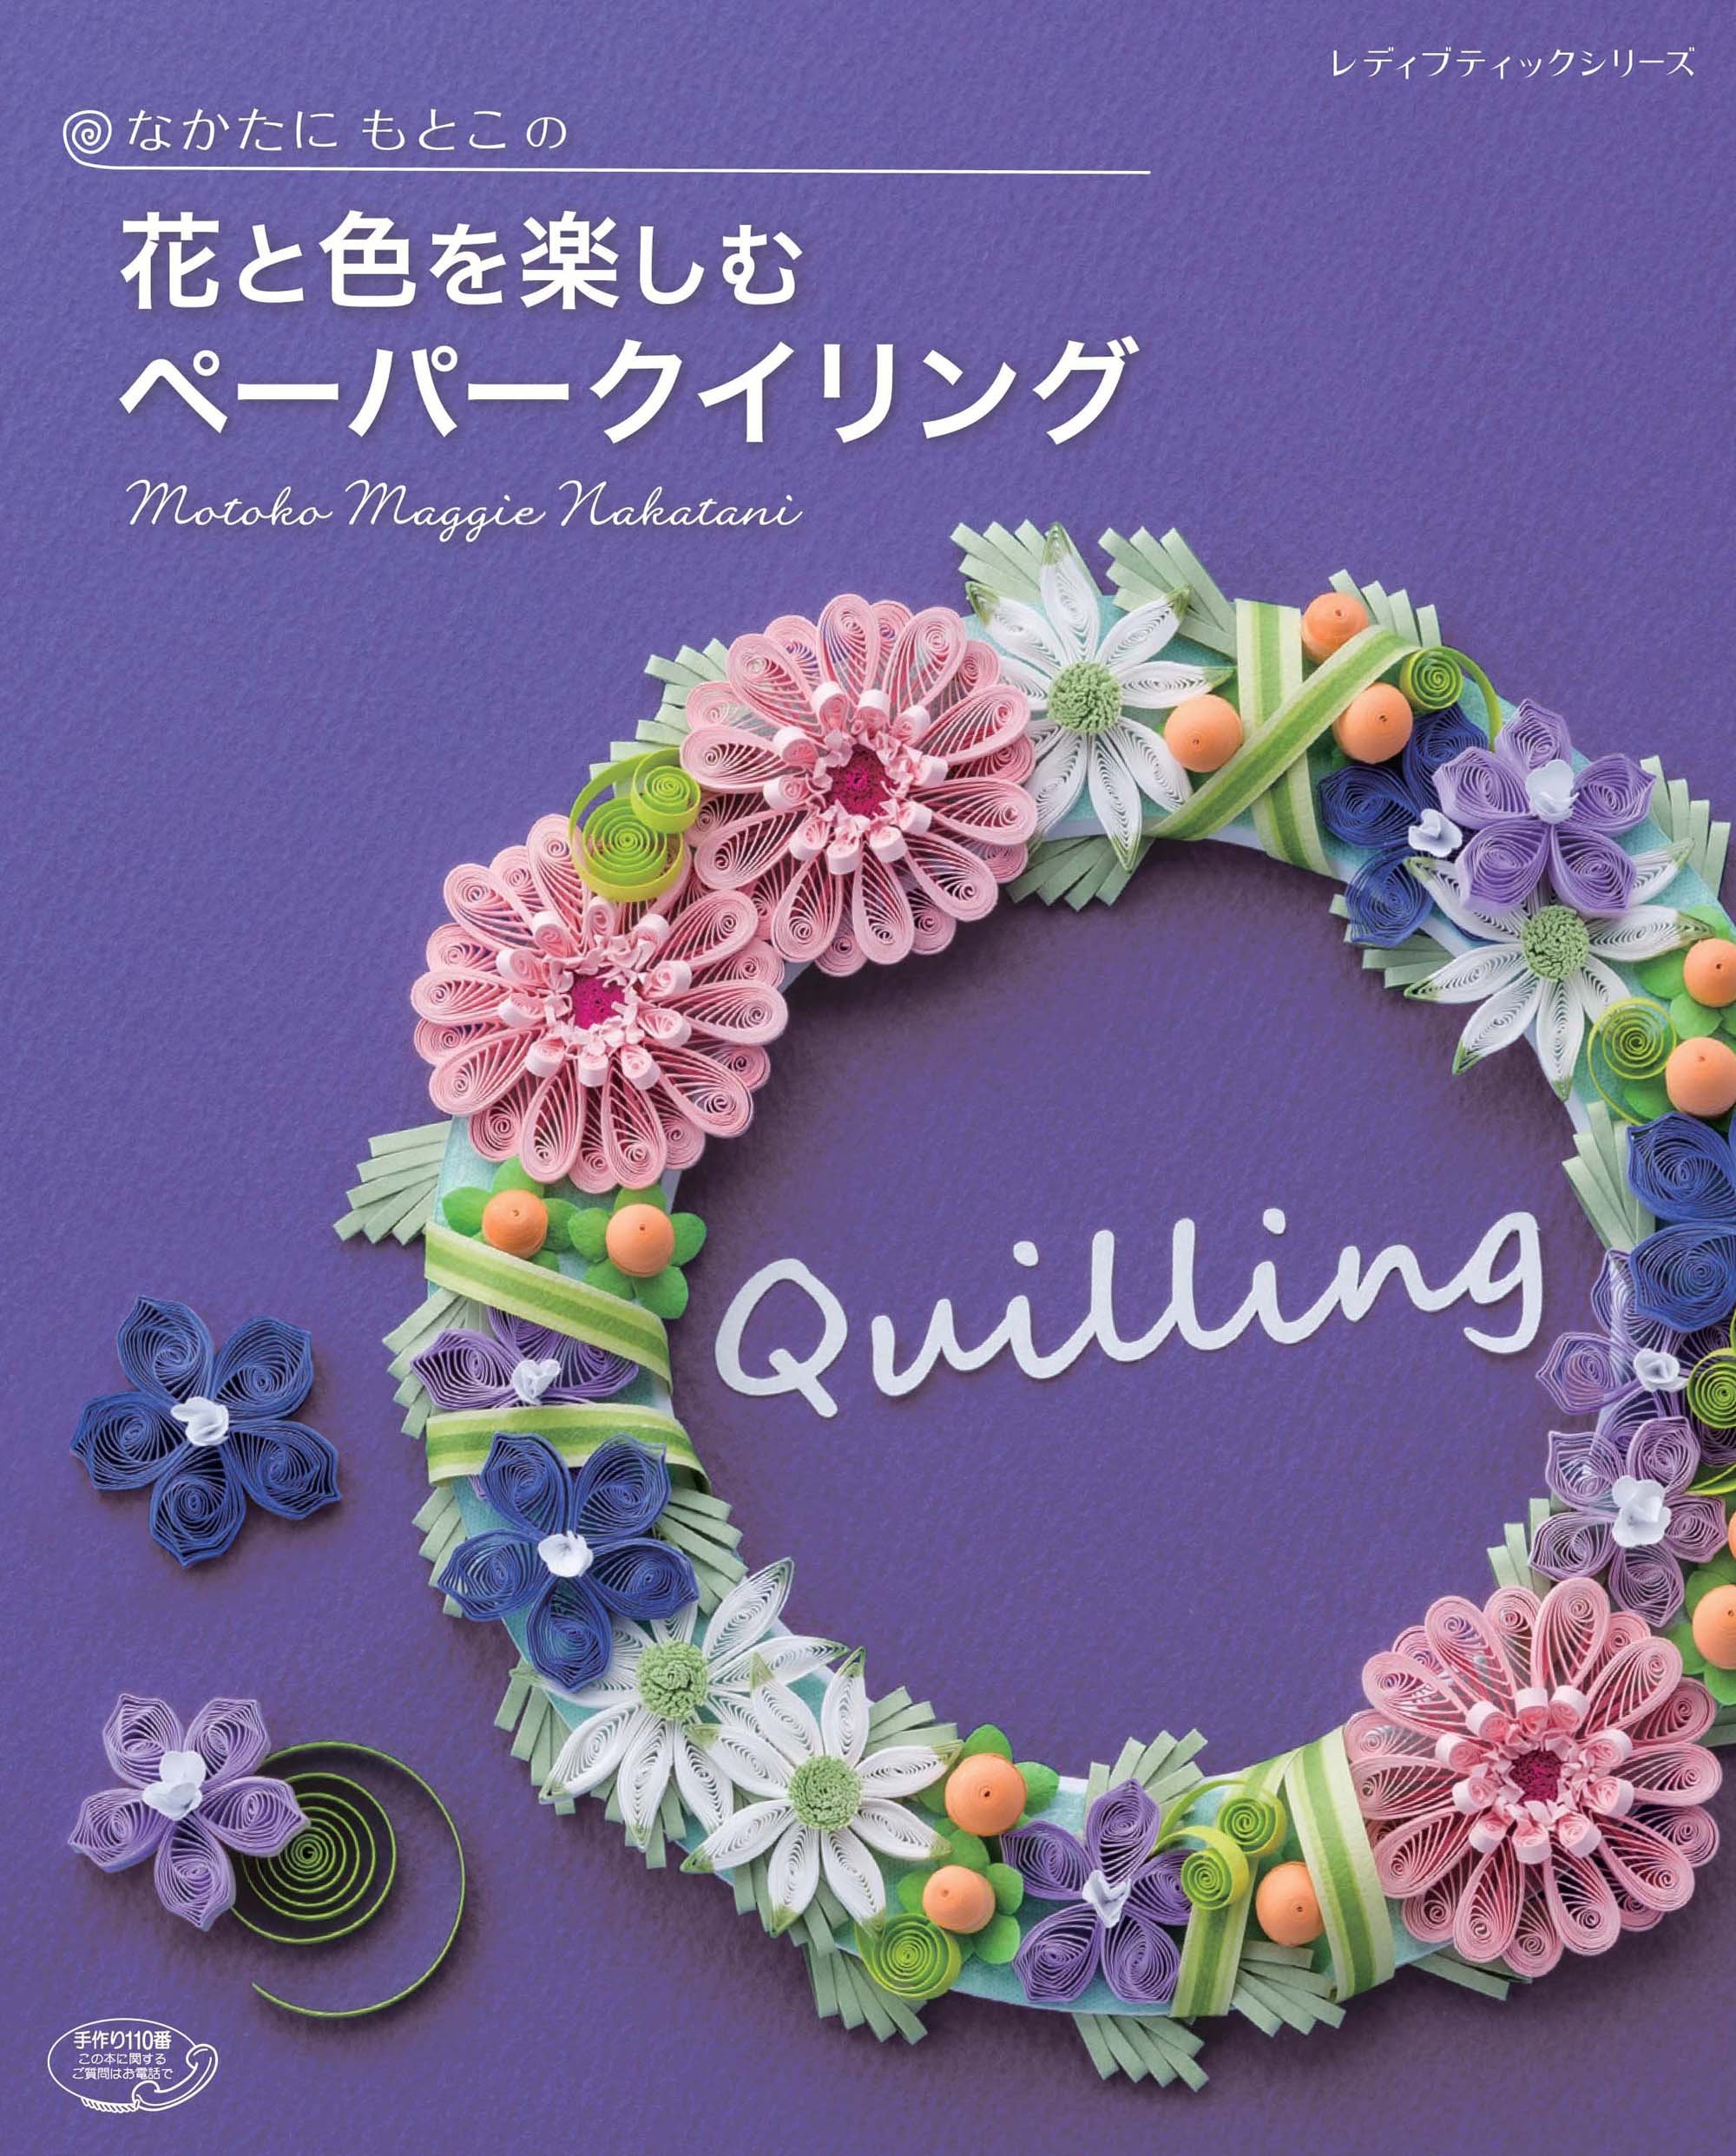 Motoko Nakatani of flowers and enjoy the color paper Quilling